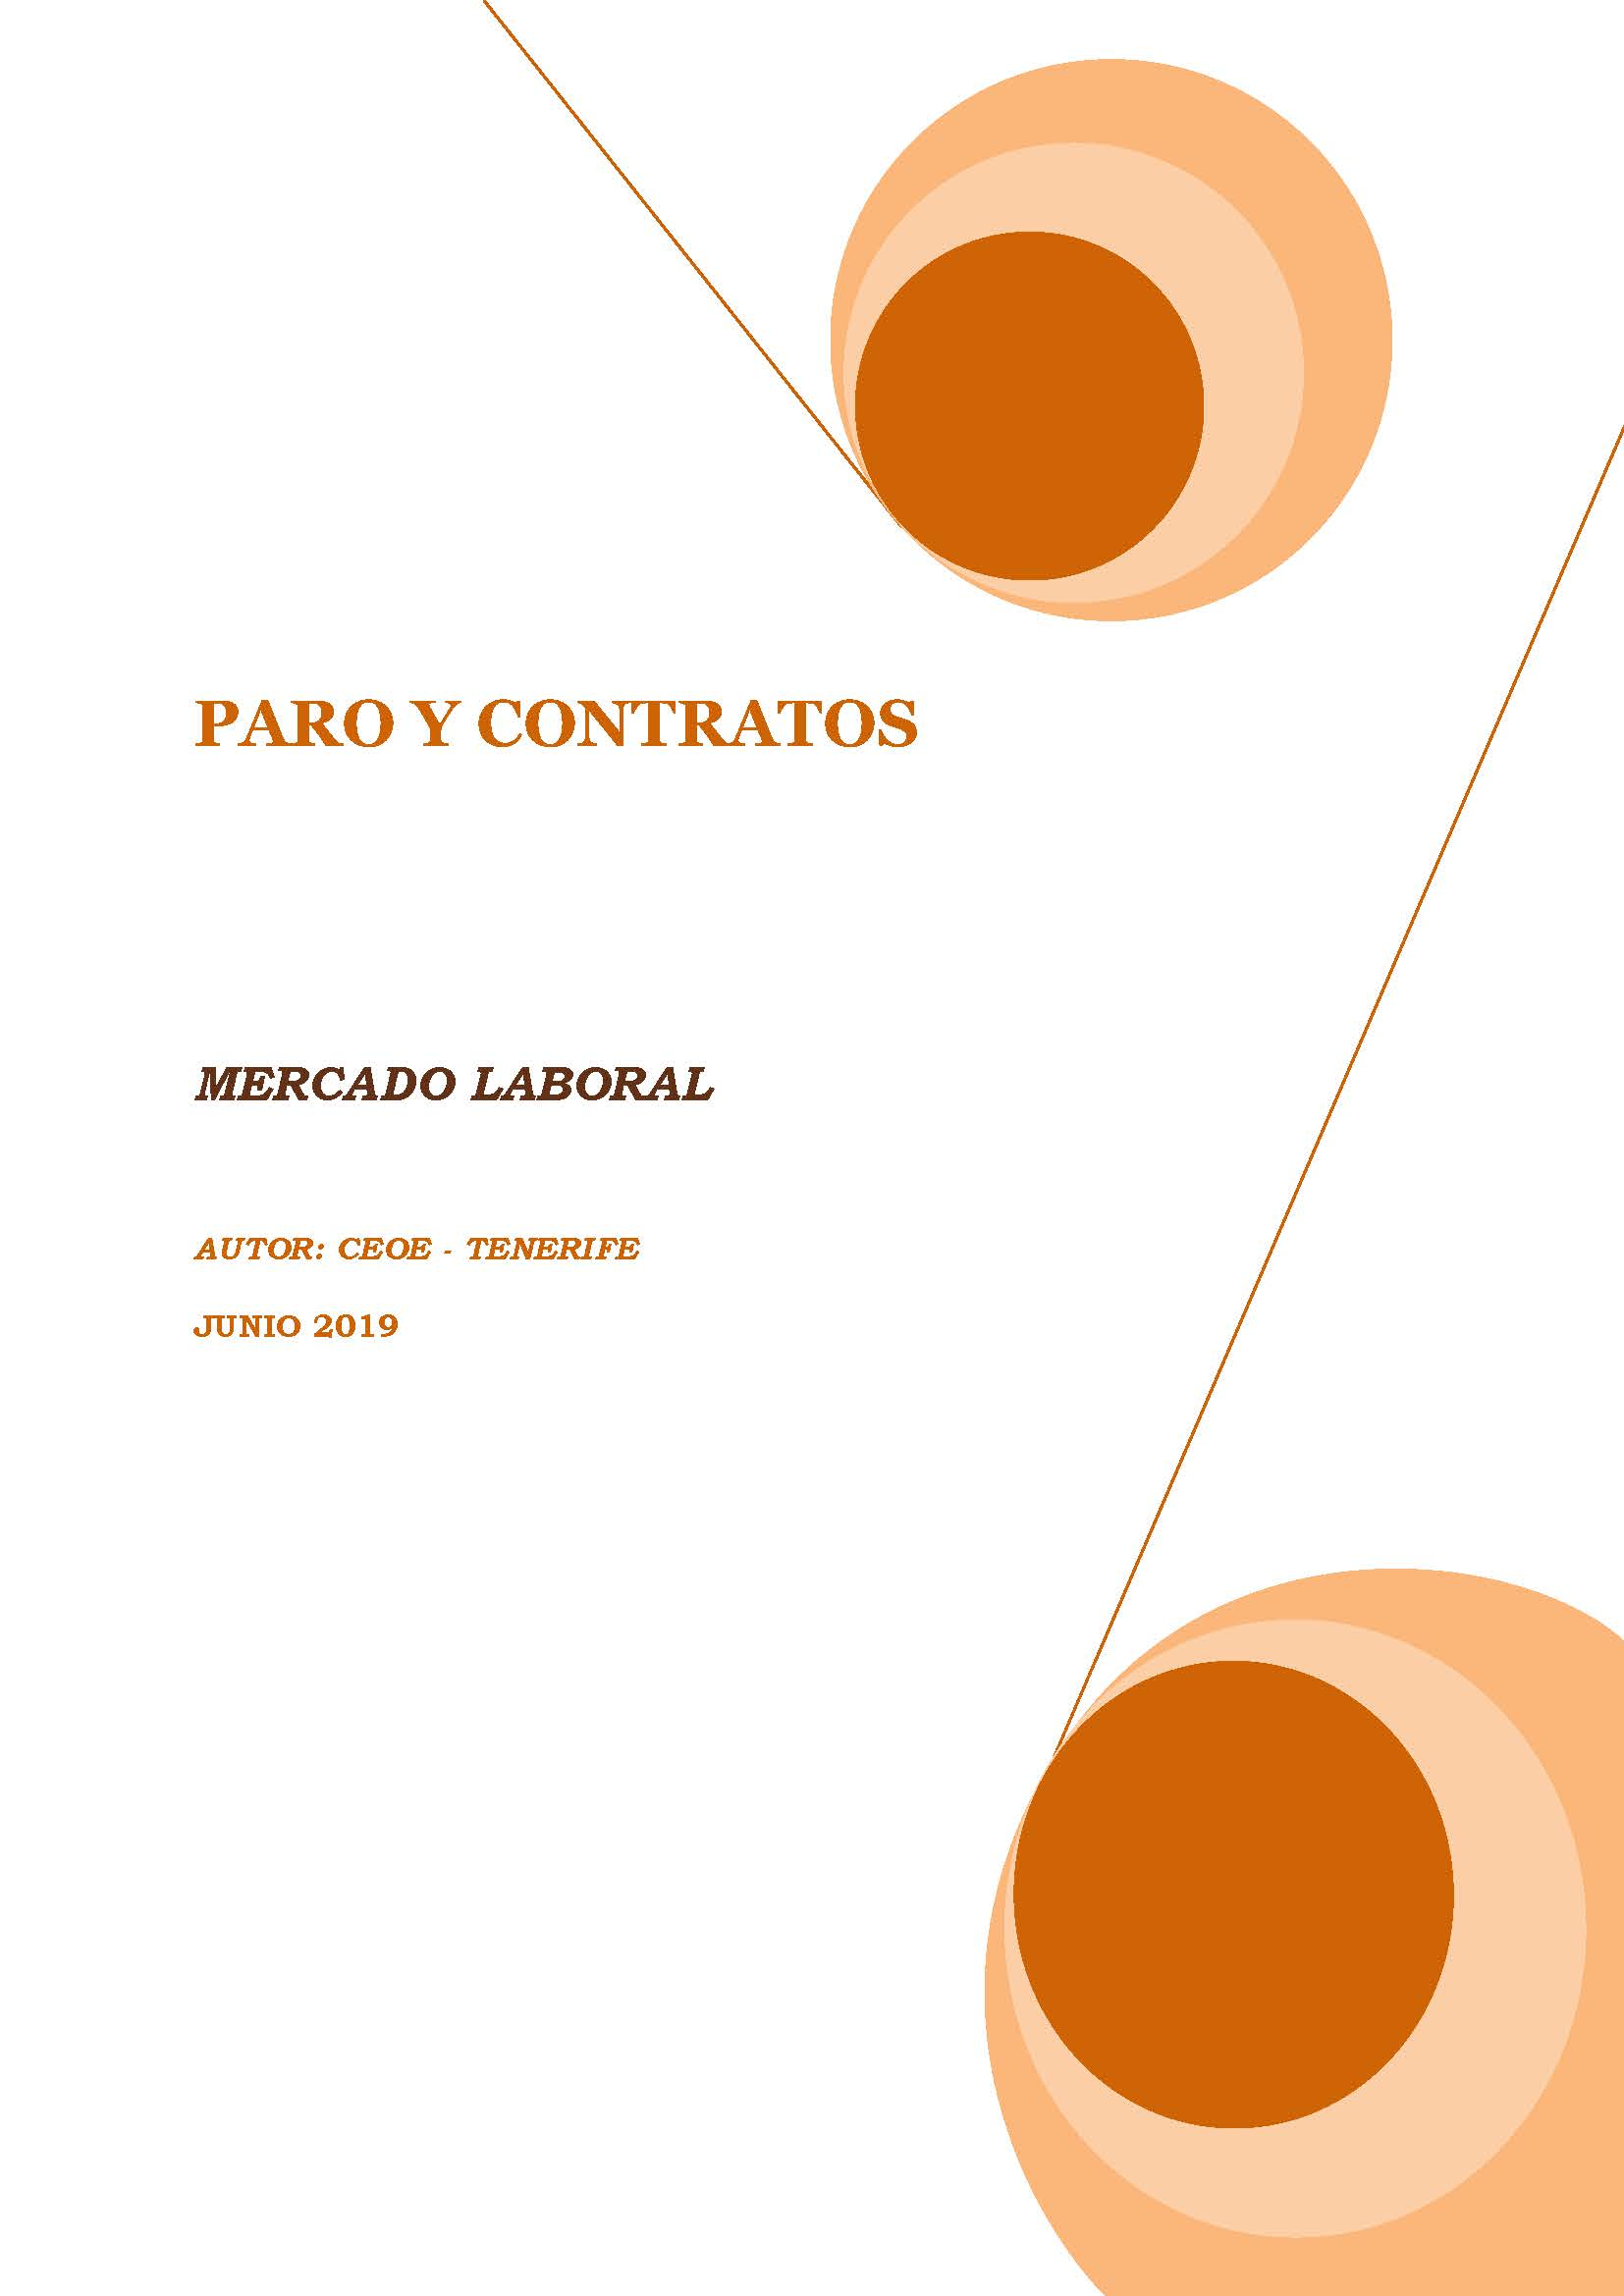 MERCADO LABORAL - PARO Y CONTRATOS JUNIO 2019